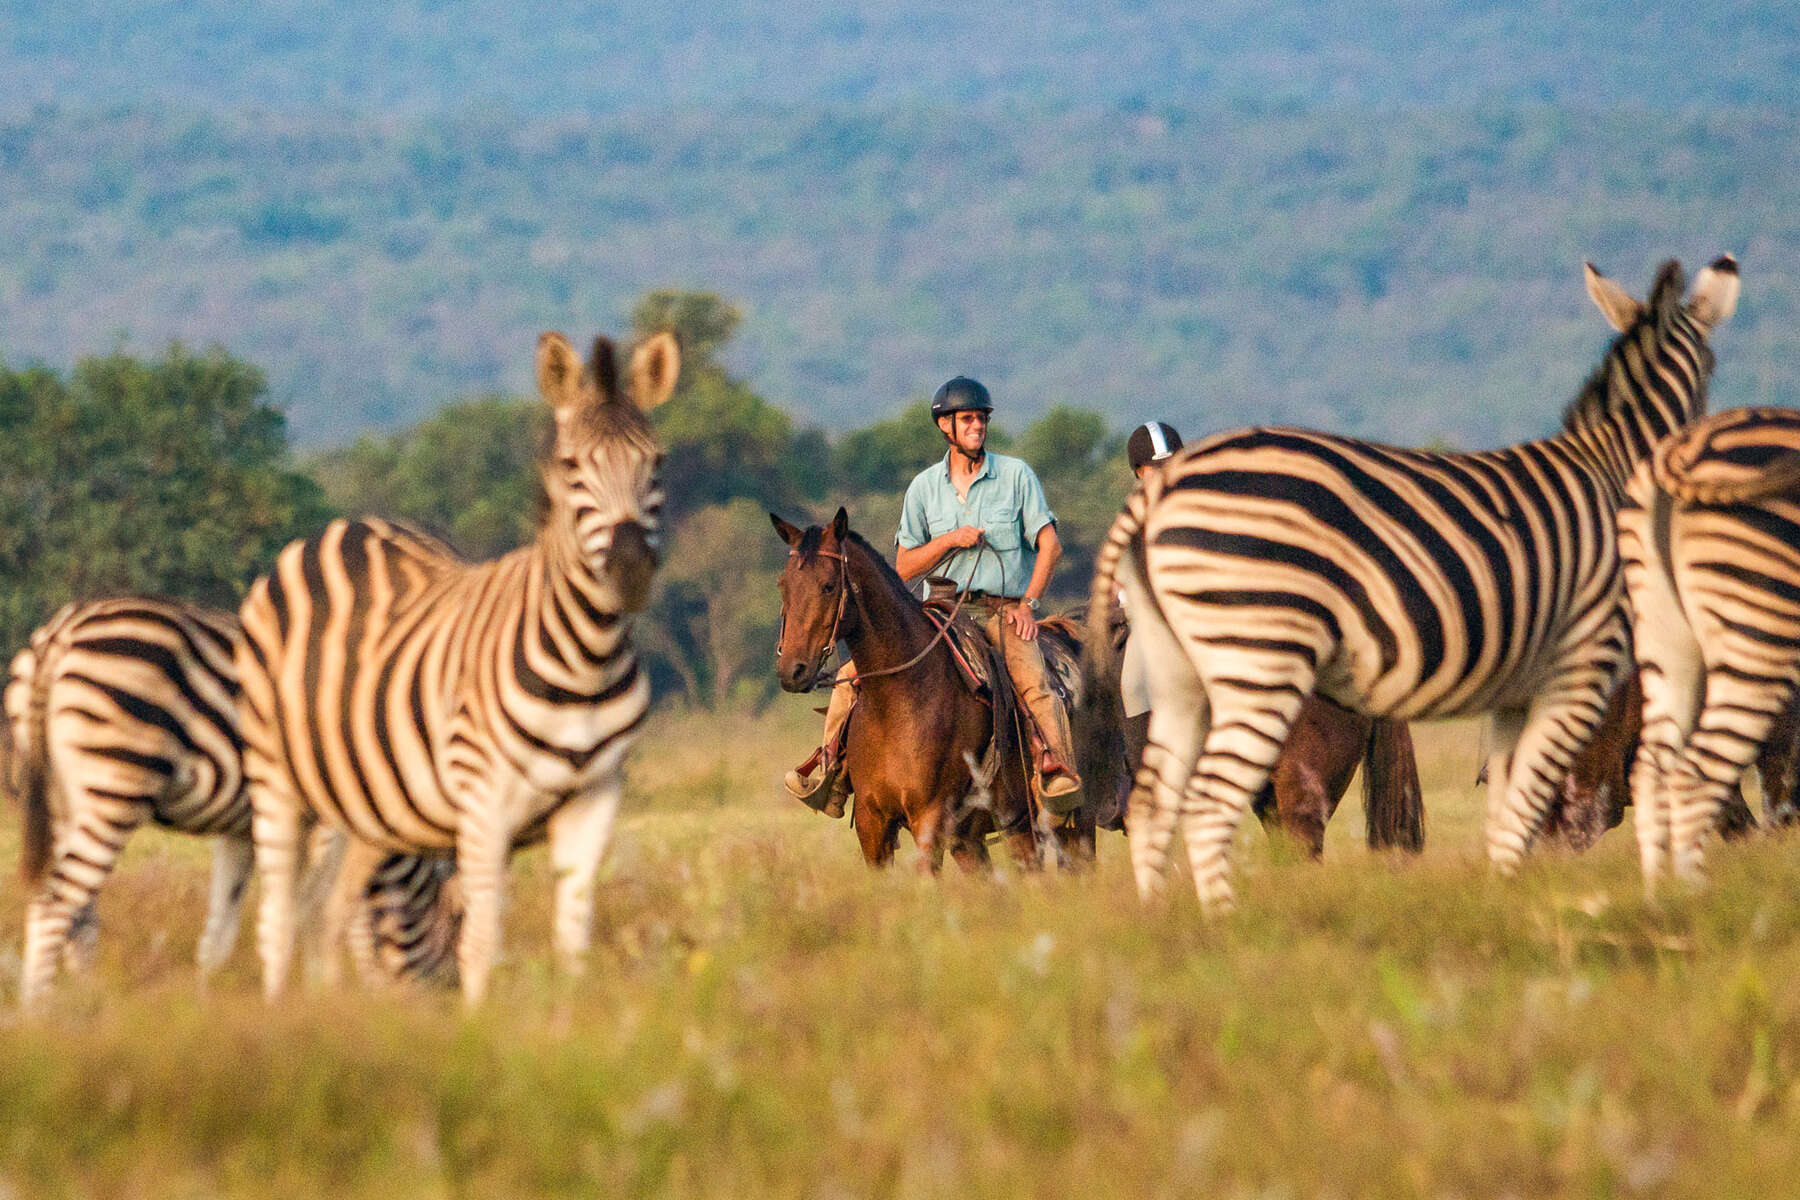 Rider watching zebra from horseback on safari